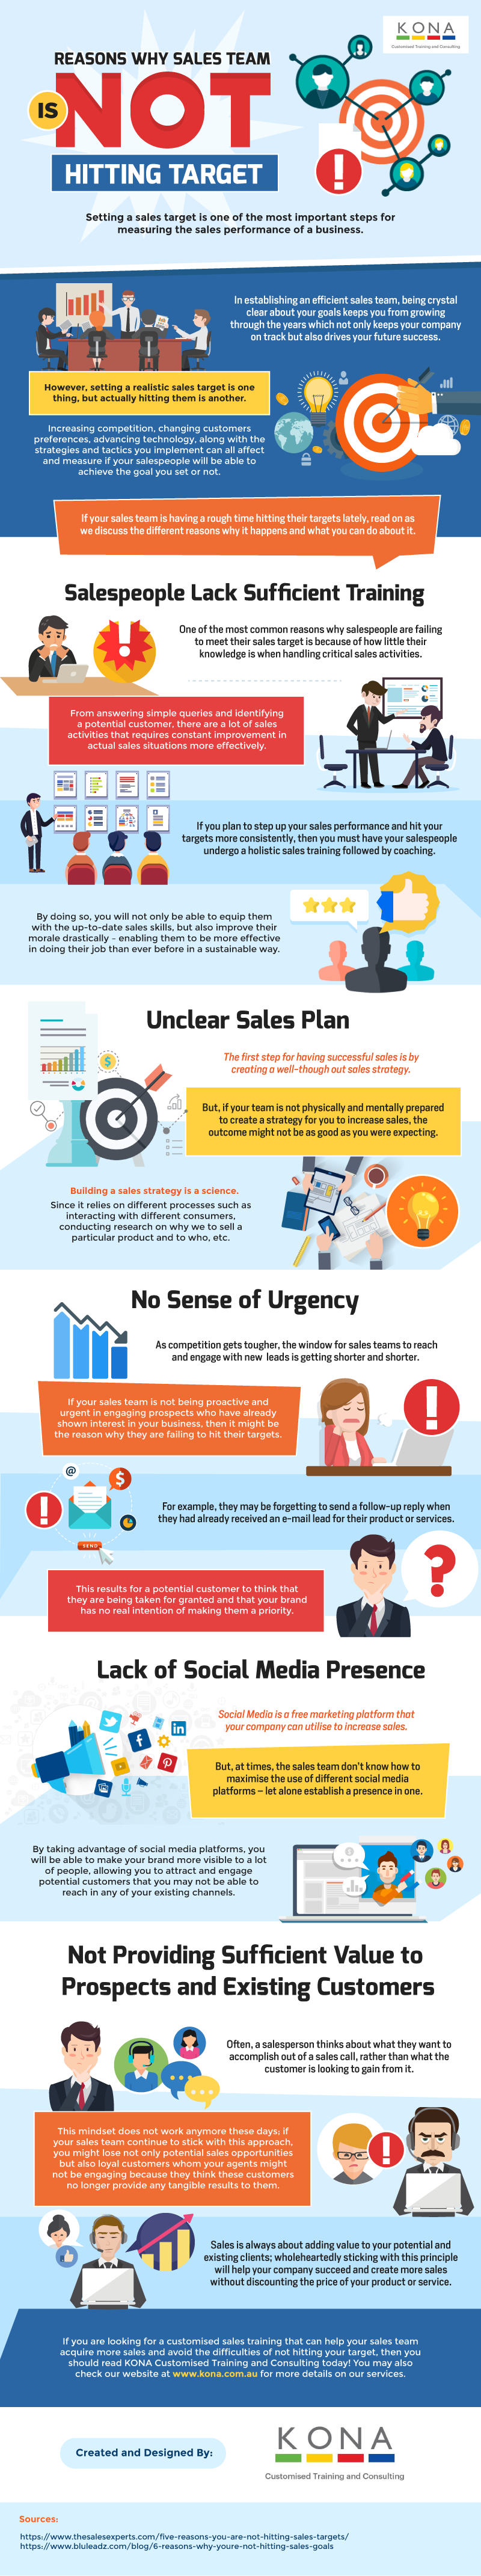 Reasons Why Sales Team is Not Hitting Target - Infographic